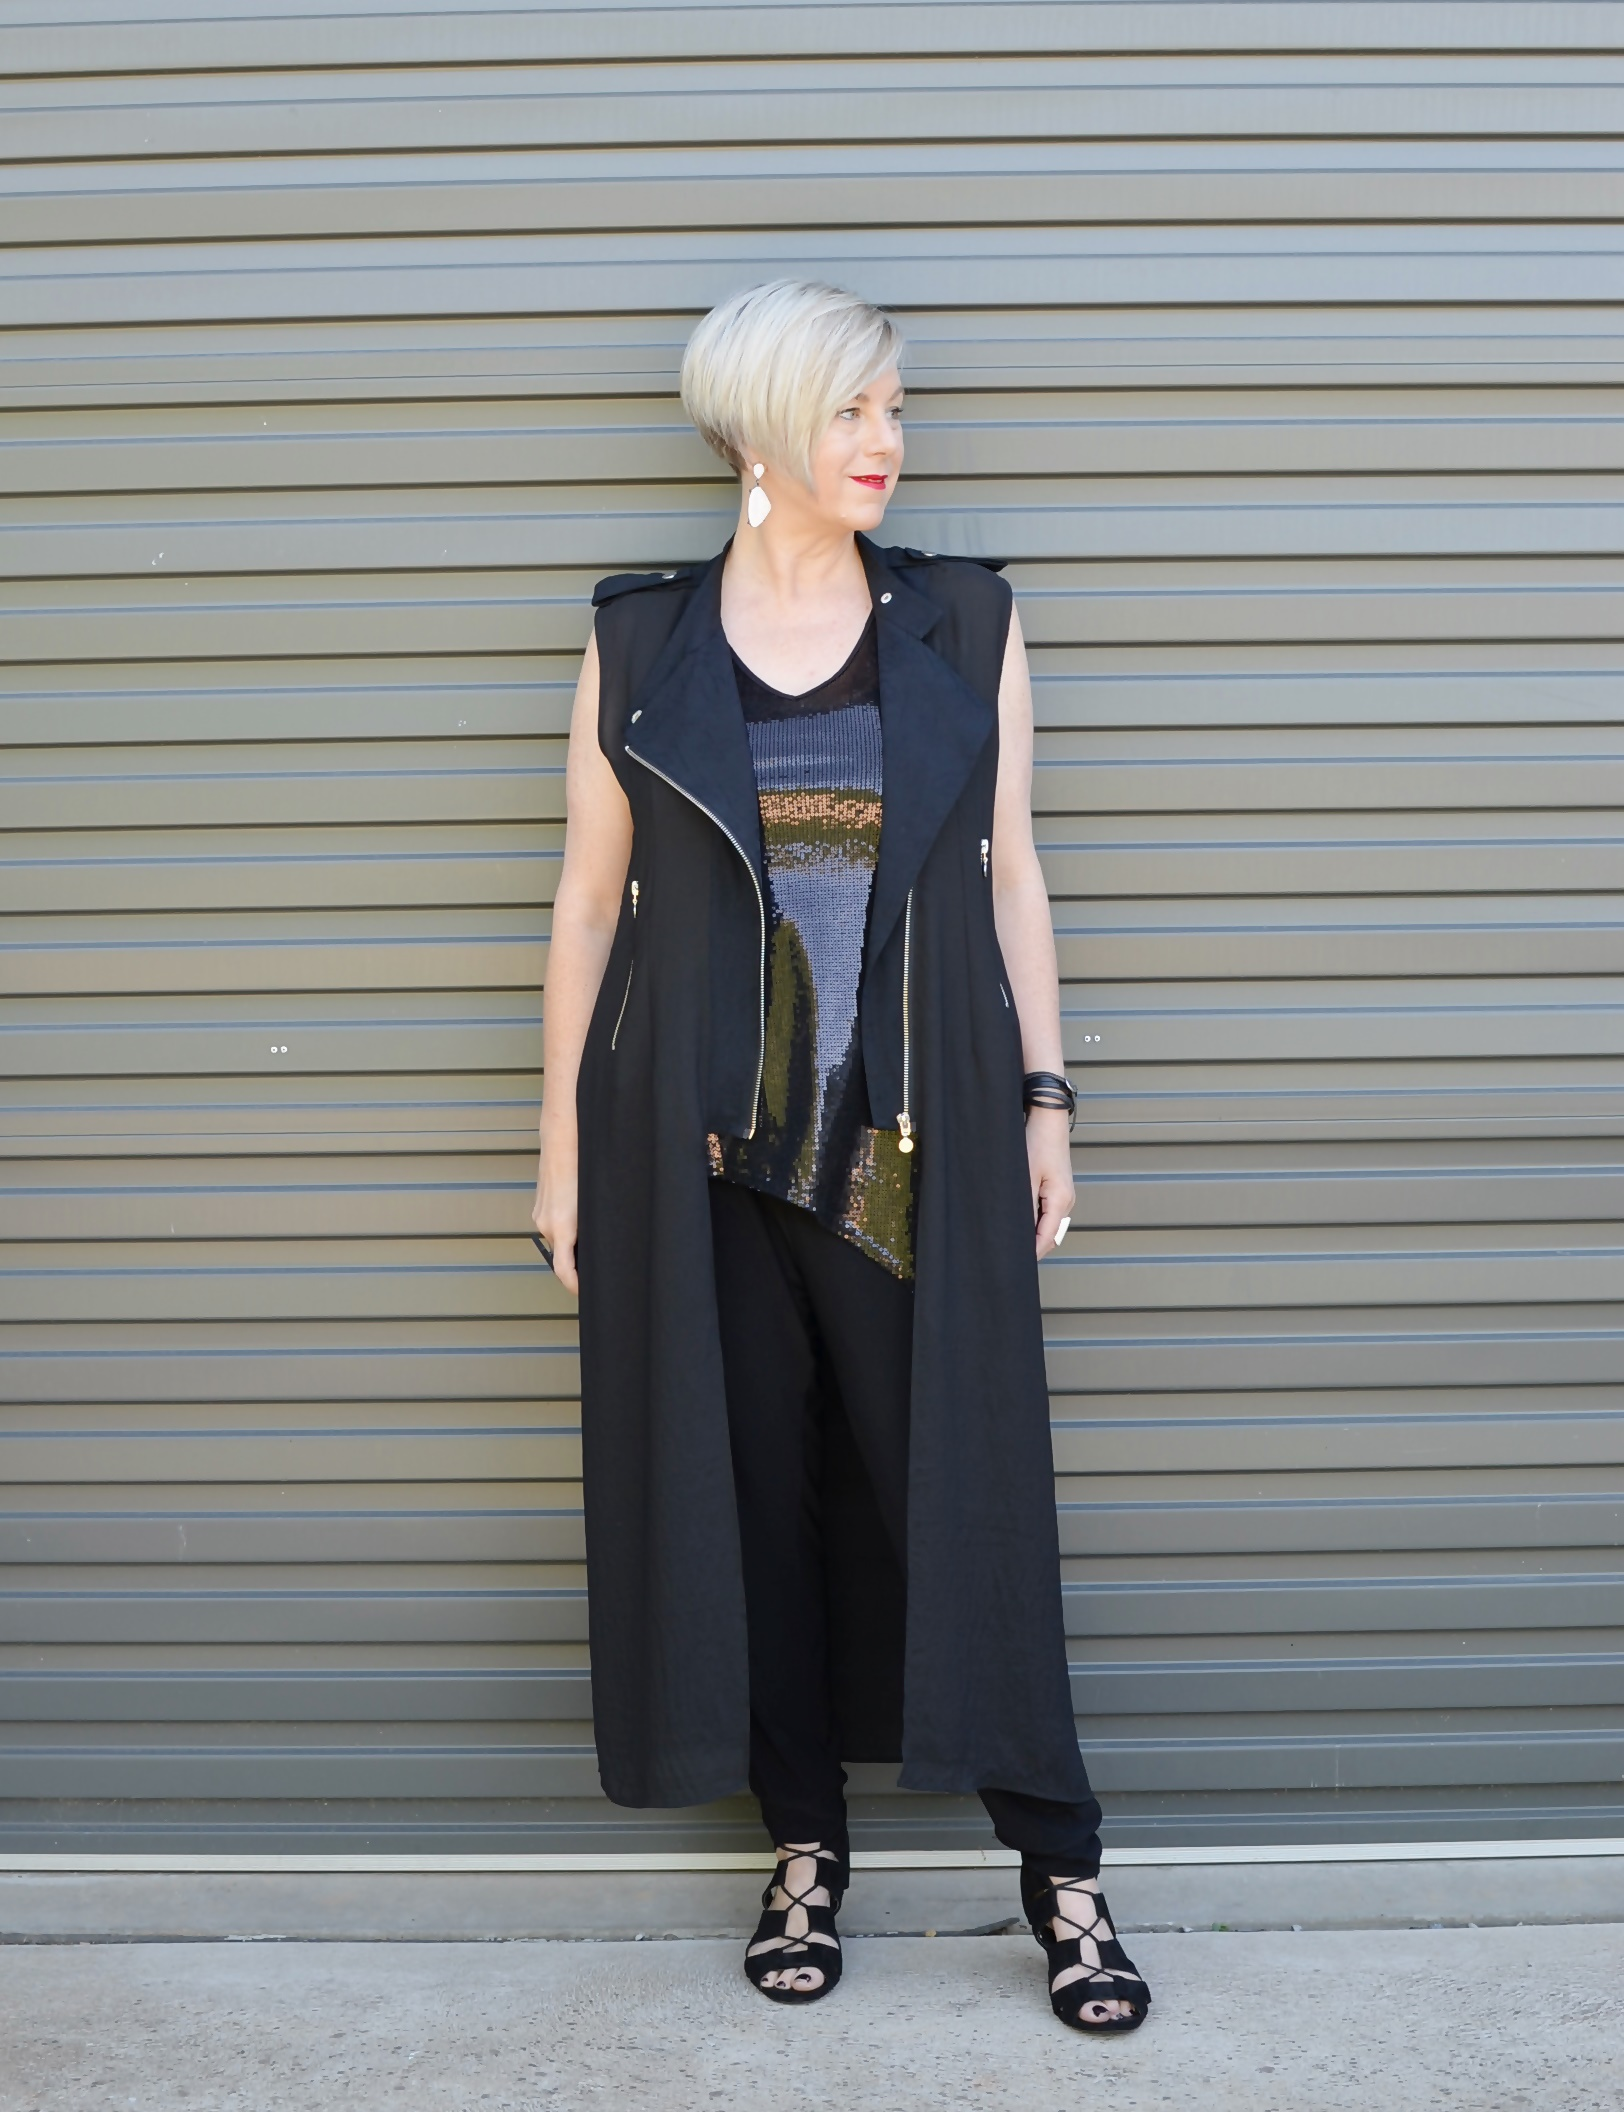 Long vest and sequin top for Saturday night // A Week Of Elevated Classic Outfits With Deborah Gates From Stylish Murmurs on The Good Trade